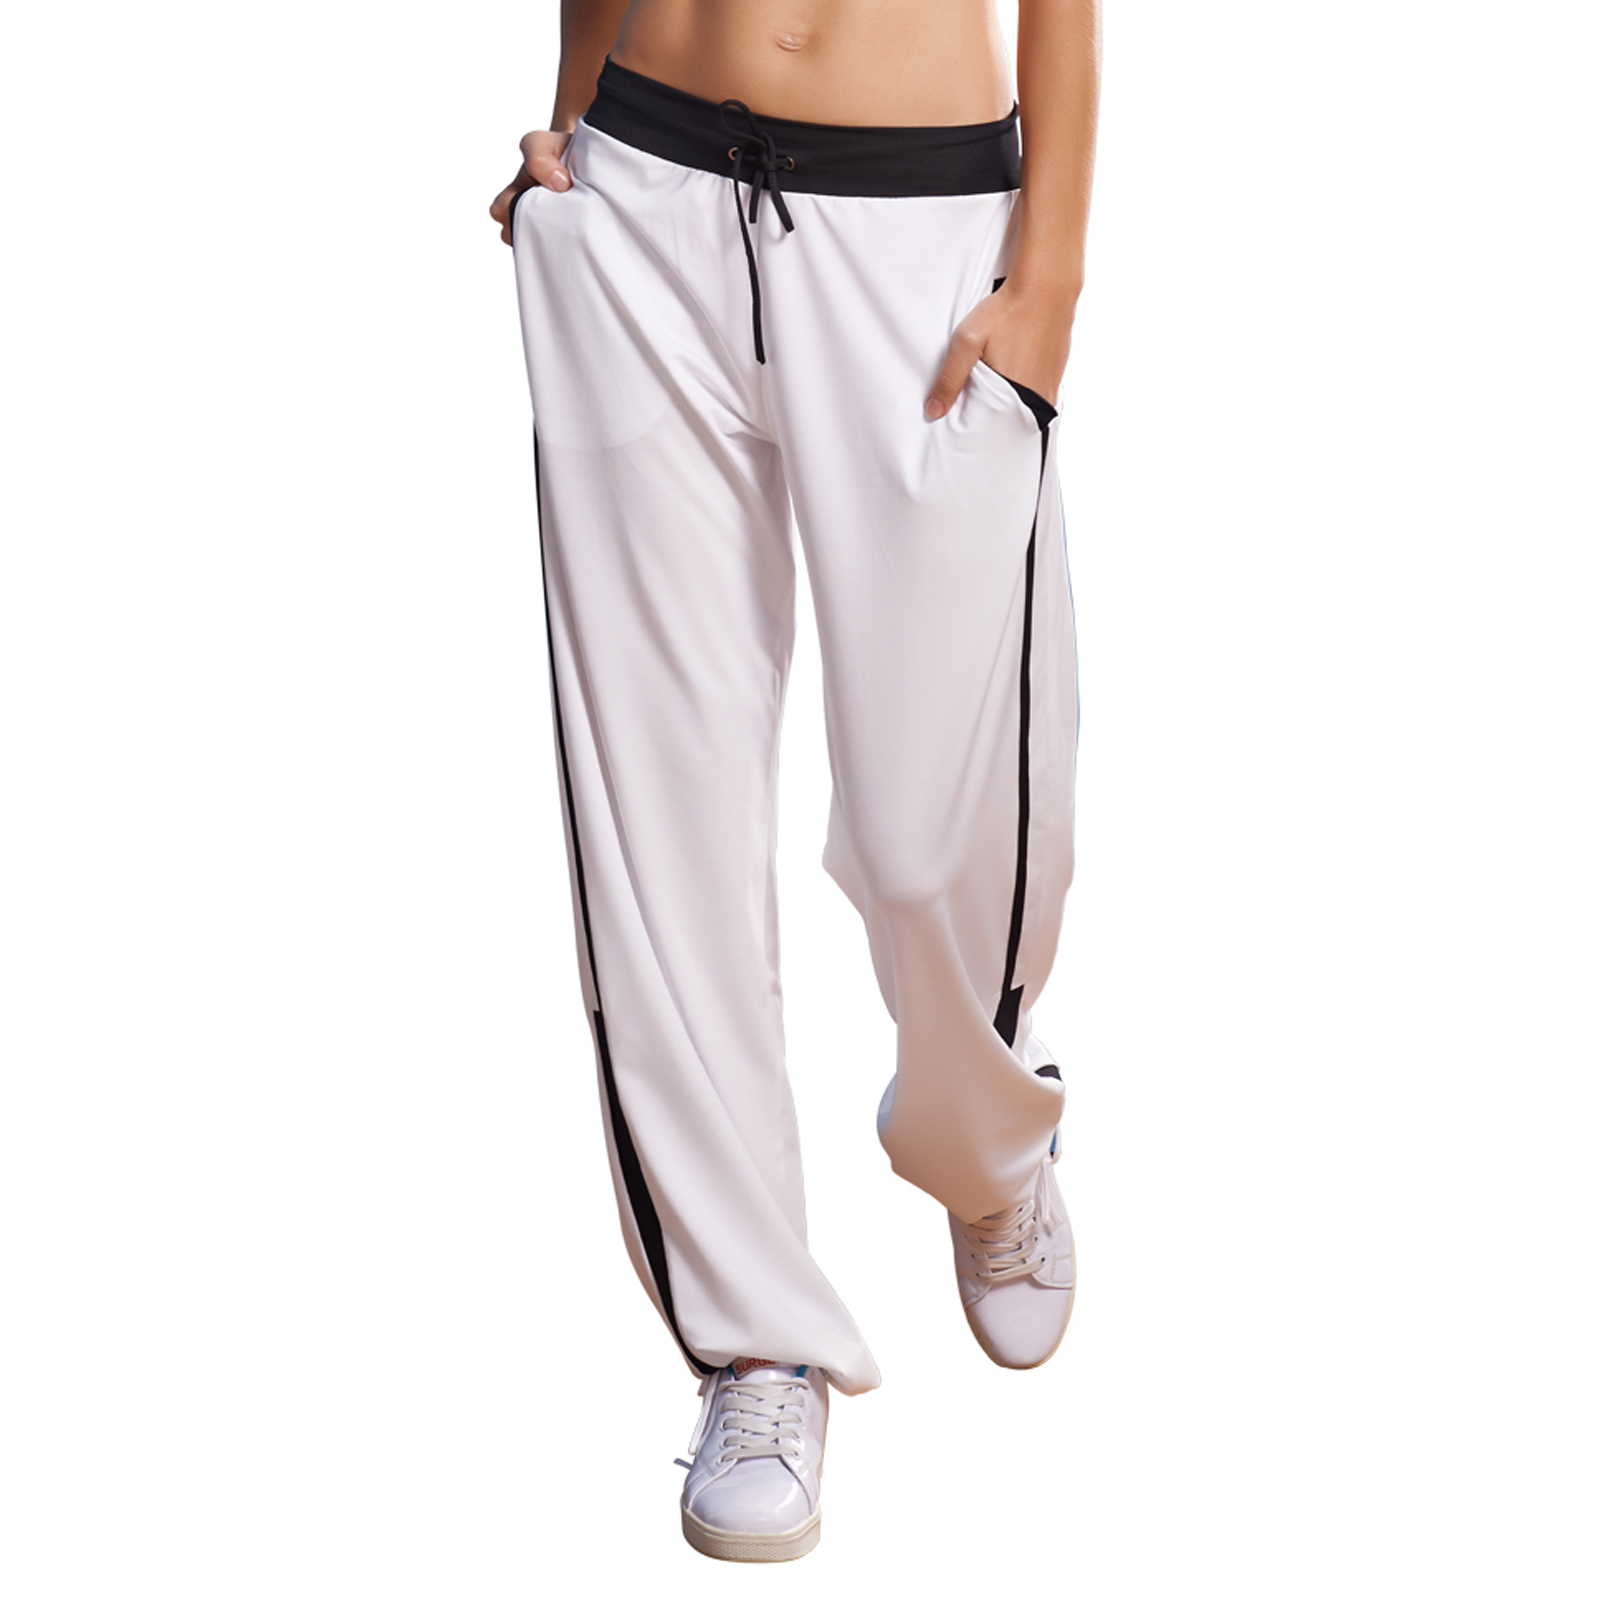 Lefan high quality women s joggers pants outdoor casual